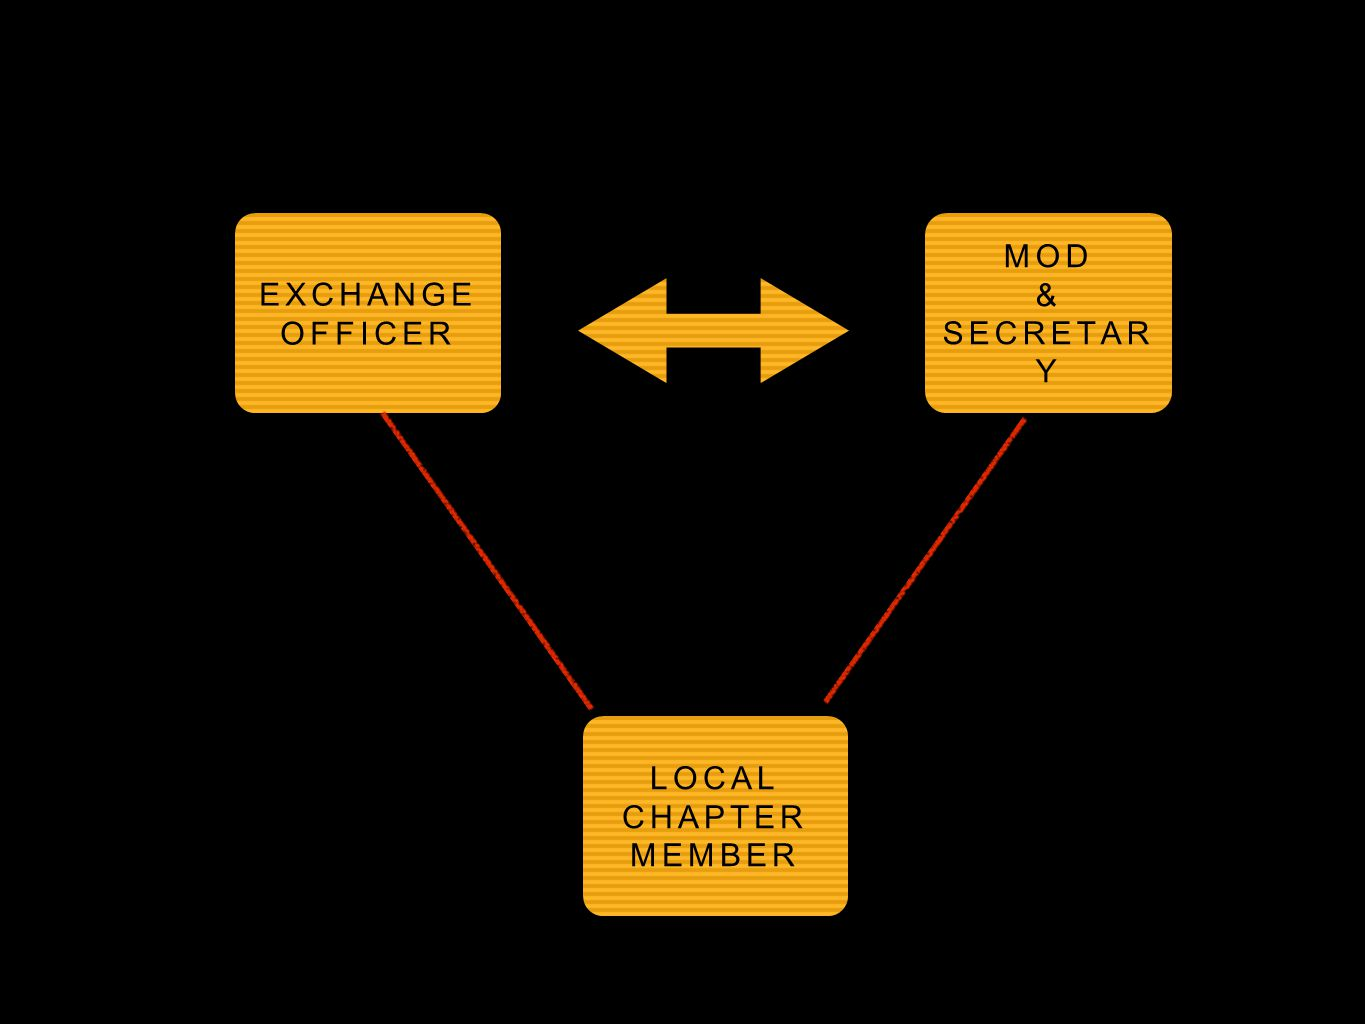 EXCHANGE OFFICER LOCAL CHAPTER MEMBER MOD & SECRETAR Y